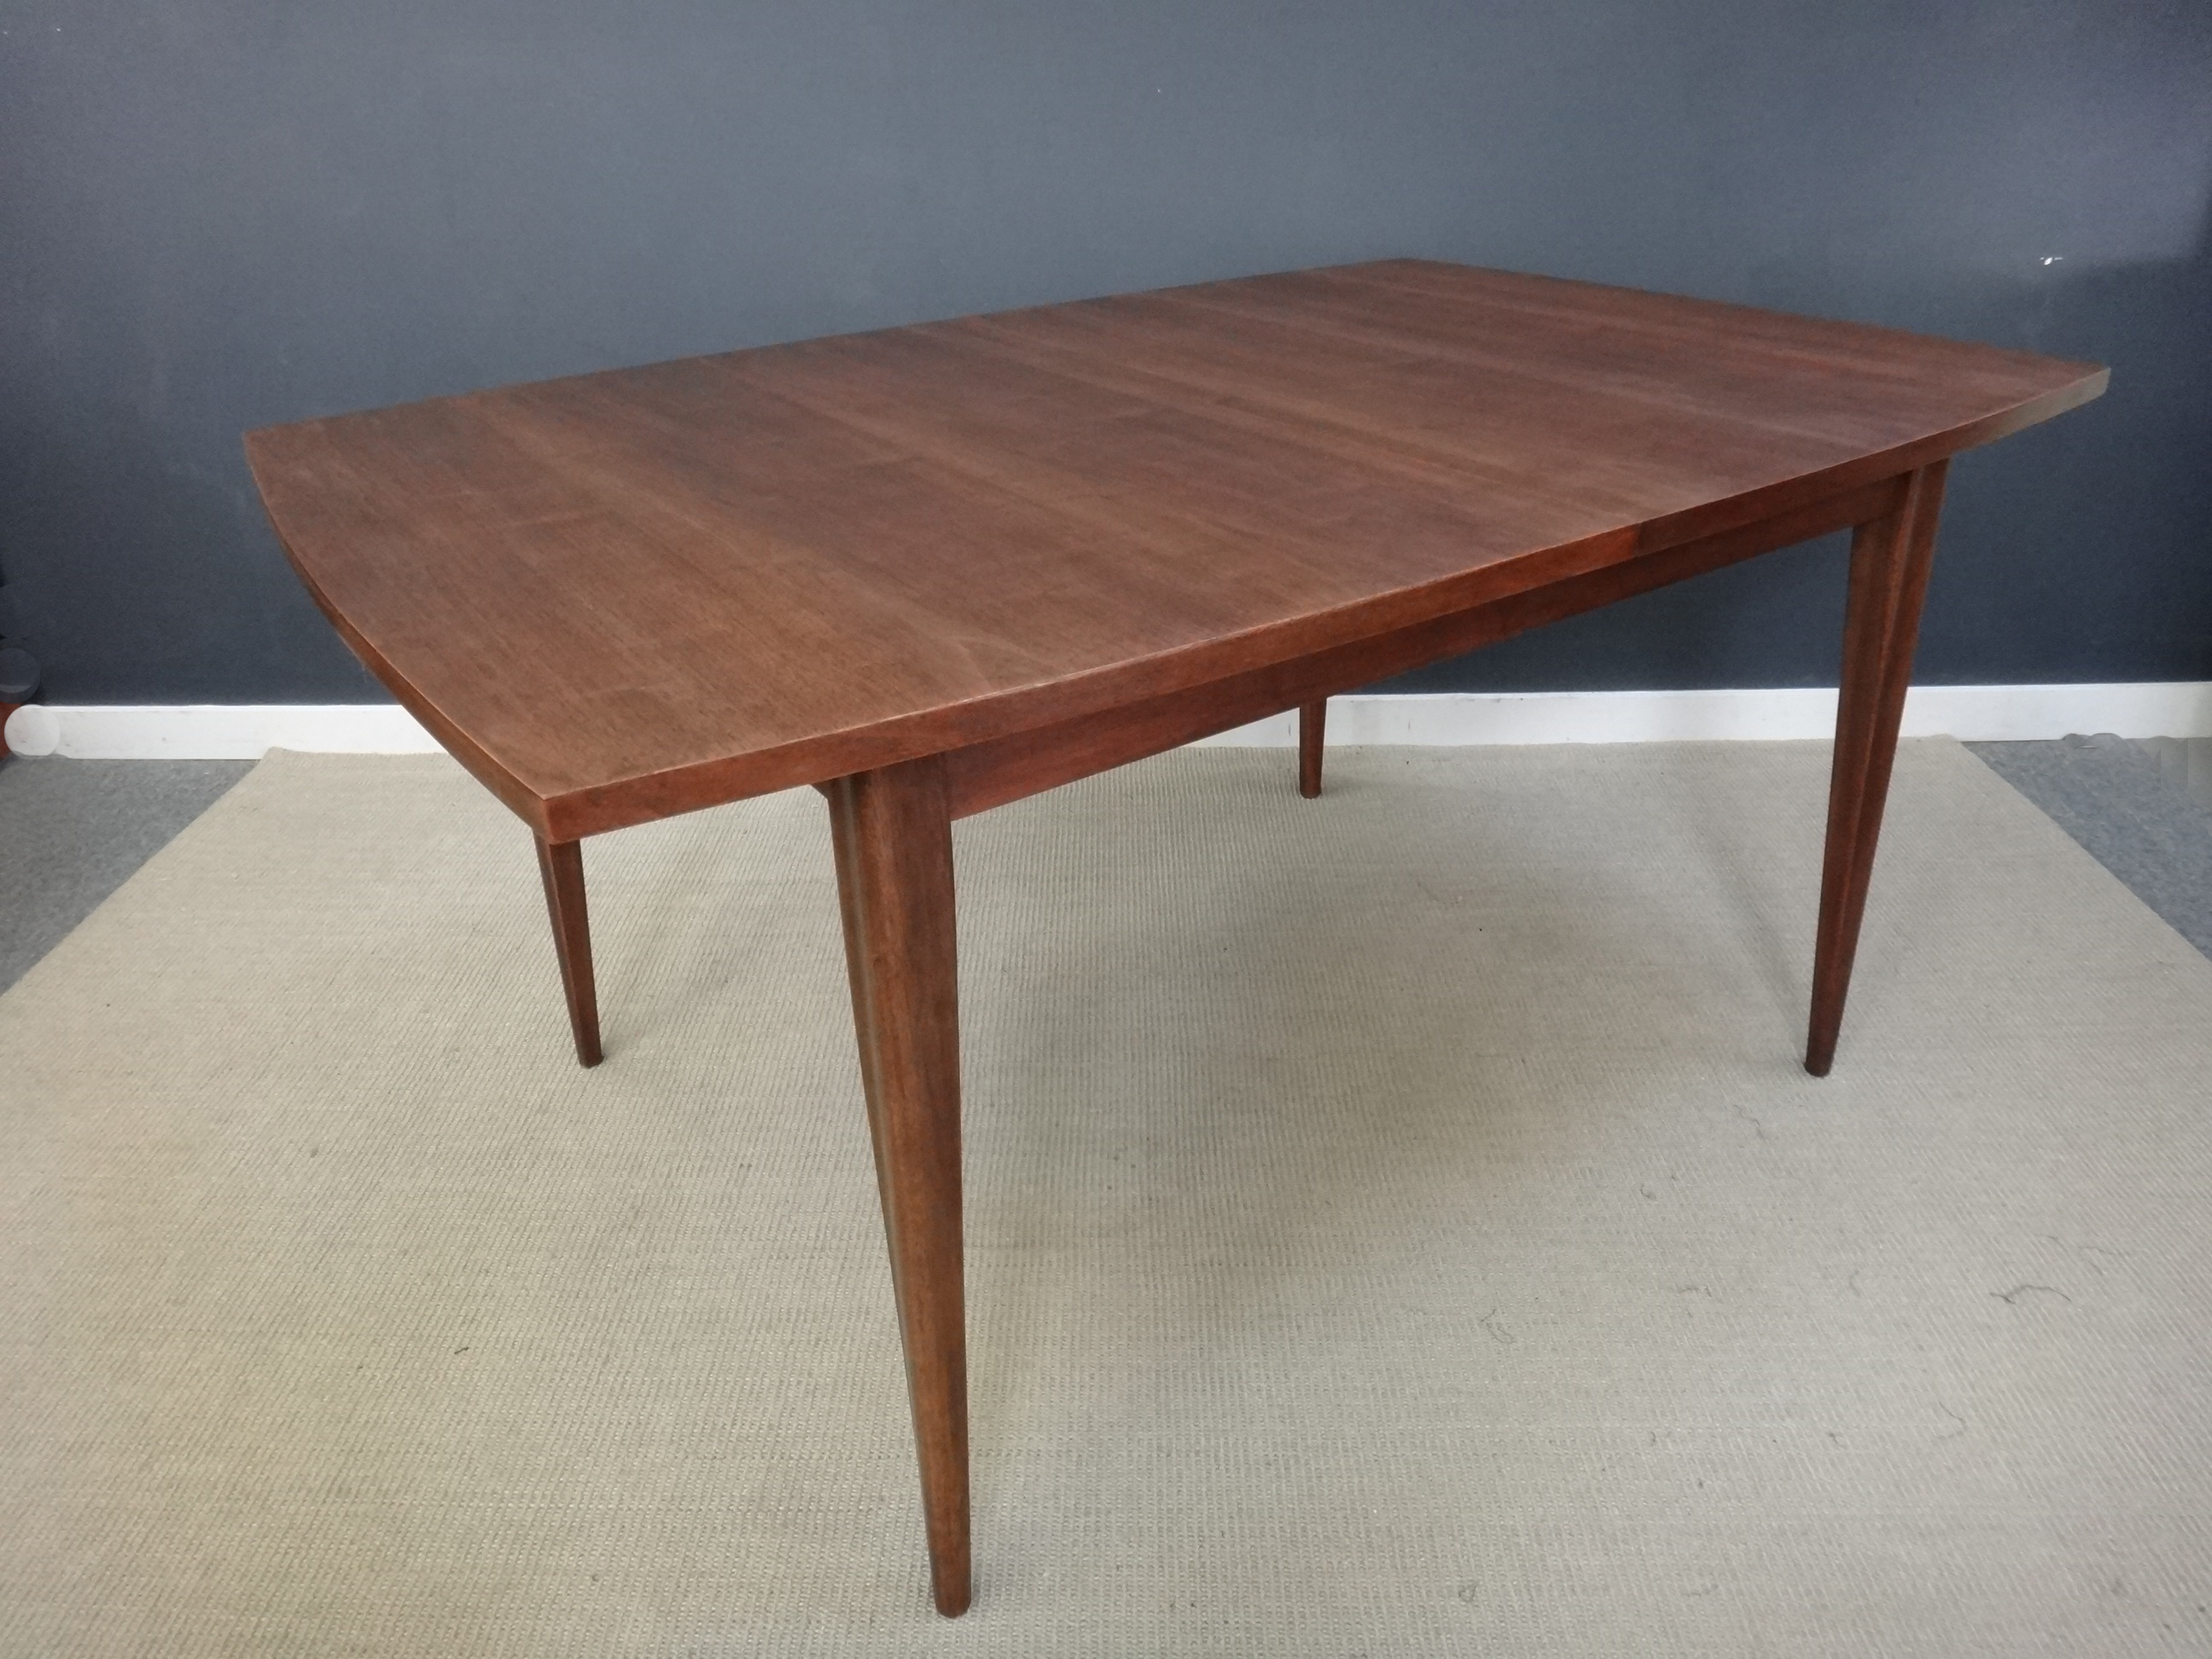 Sold Mid Century Modern Broyhill Saga Dining Table HD Walls Find